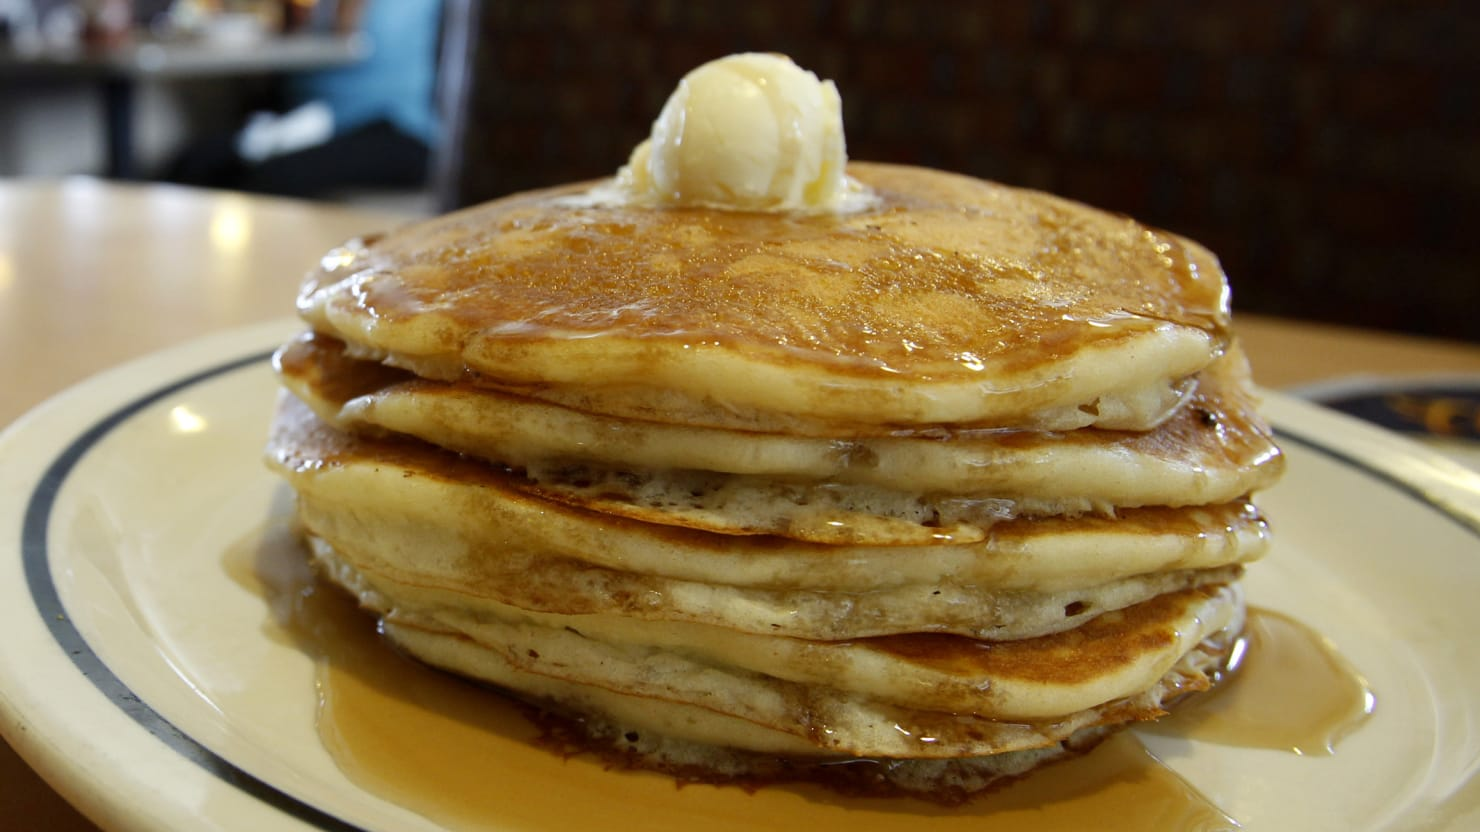 Middle School Students Allegedly Fed Semen-Filled Crepes To Teachers